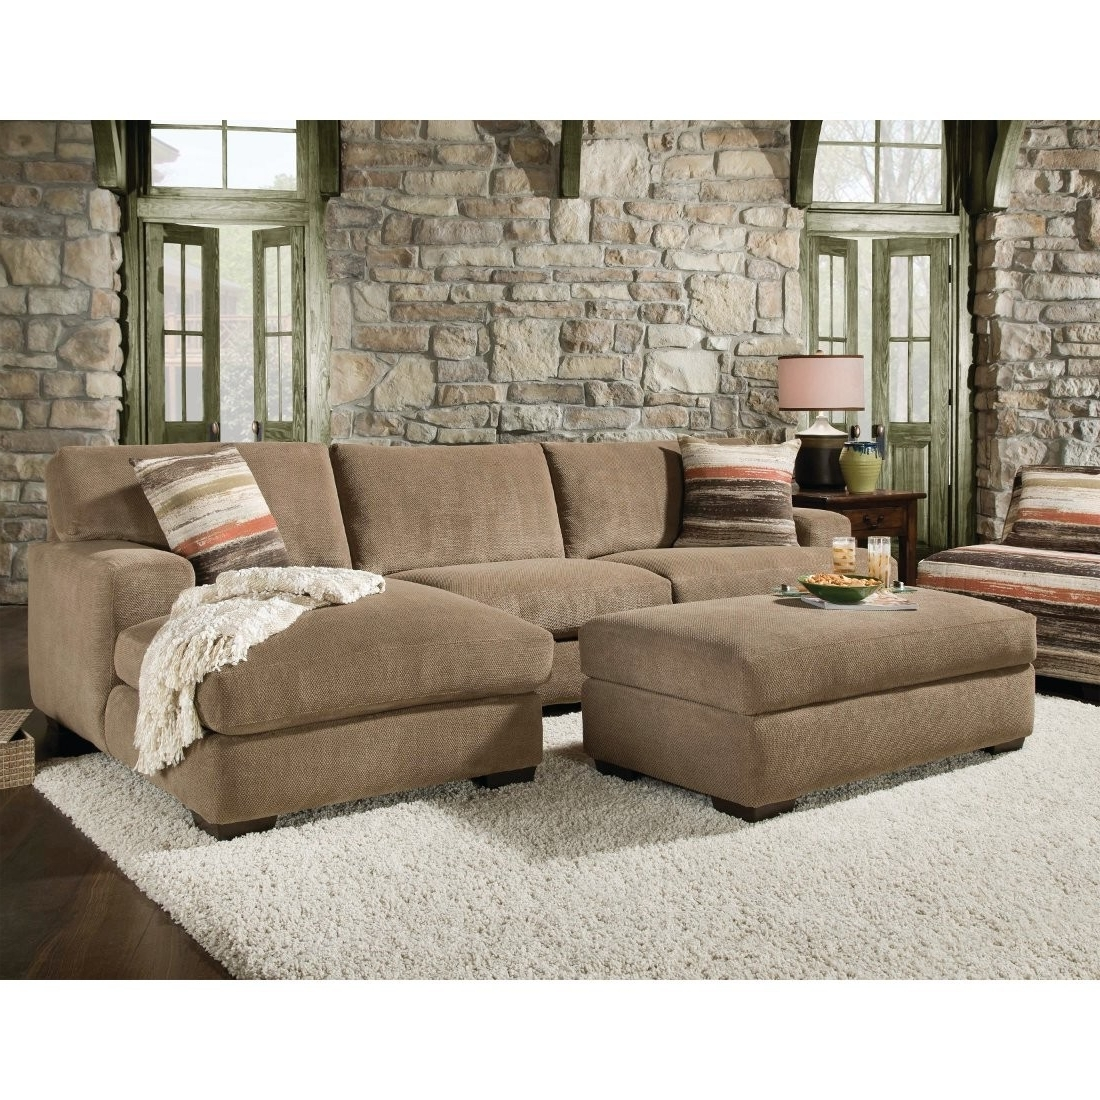 Newest Small Sofas With Chaise Inside Beautiful Sectional Sofa With Chaise And Ottoman Pictures (View 14 of 15)